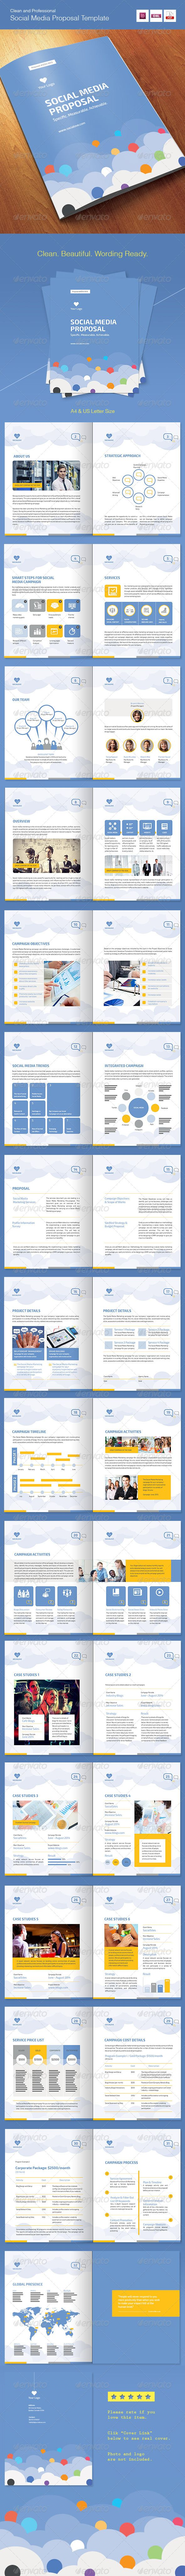 Social Media Proposal Template by afahmy Clean and Professional design for social media business proposal help you to create confident and excellent presentation to your p